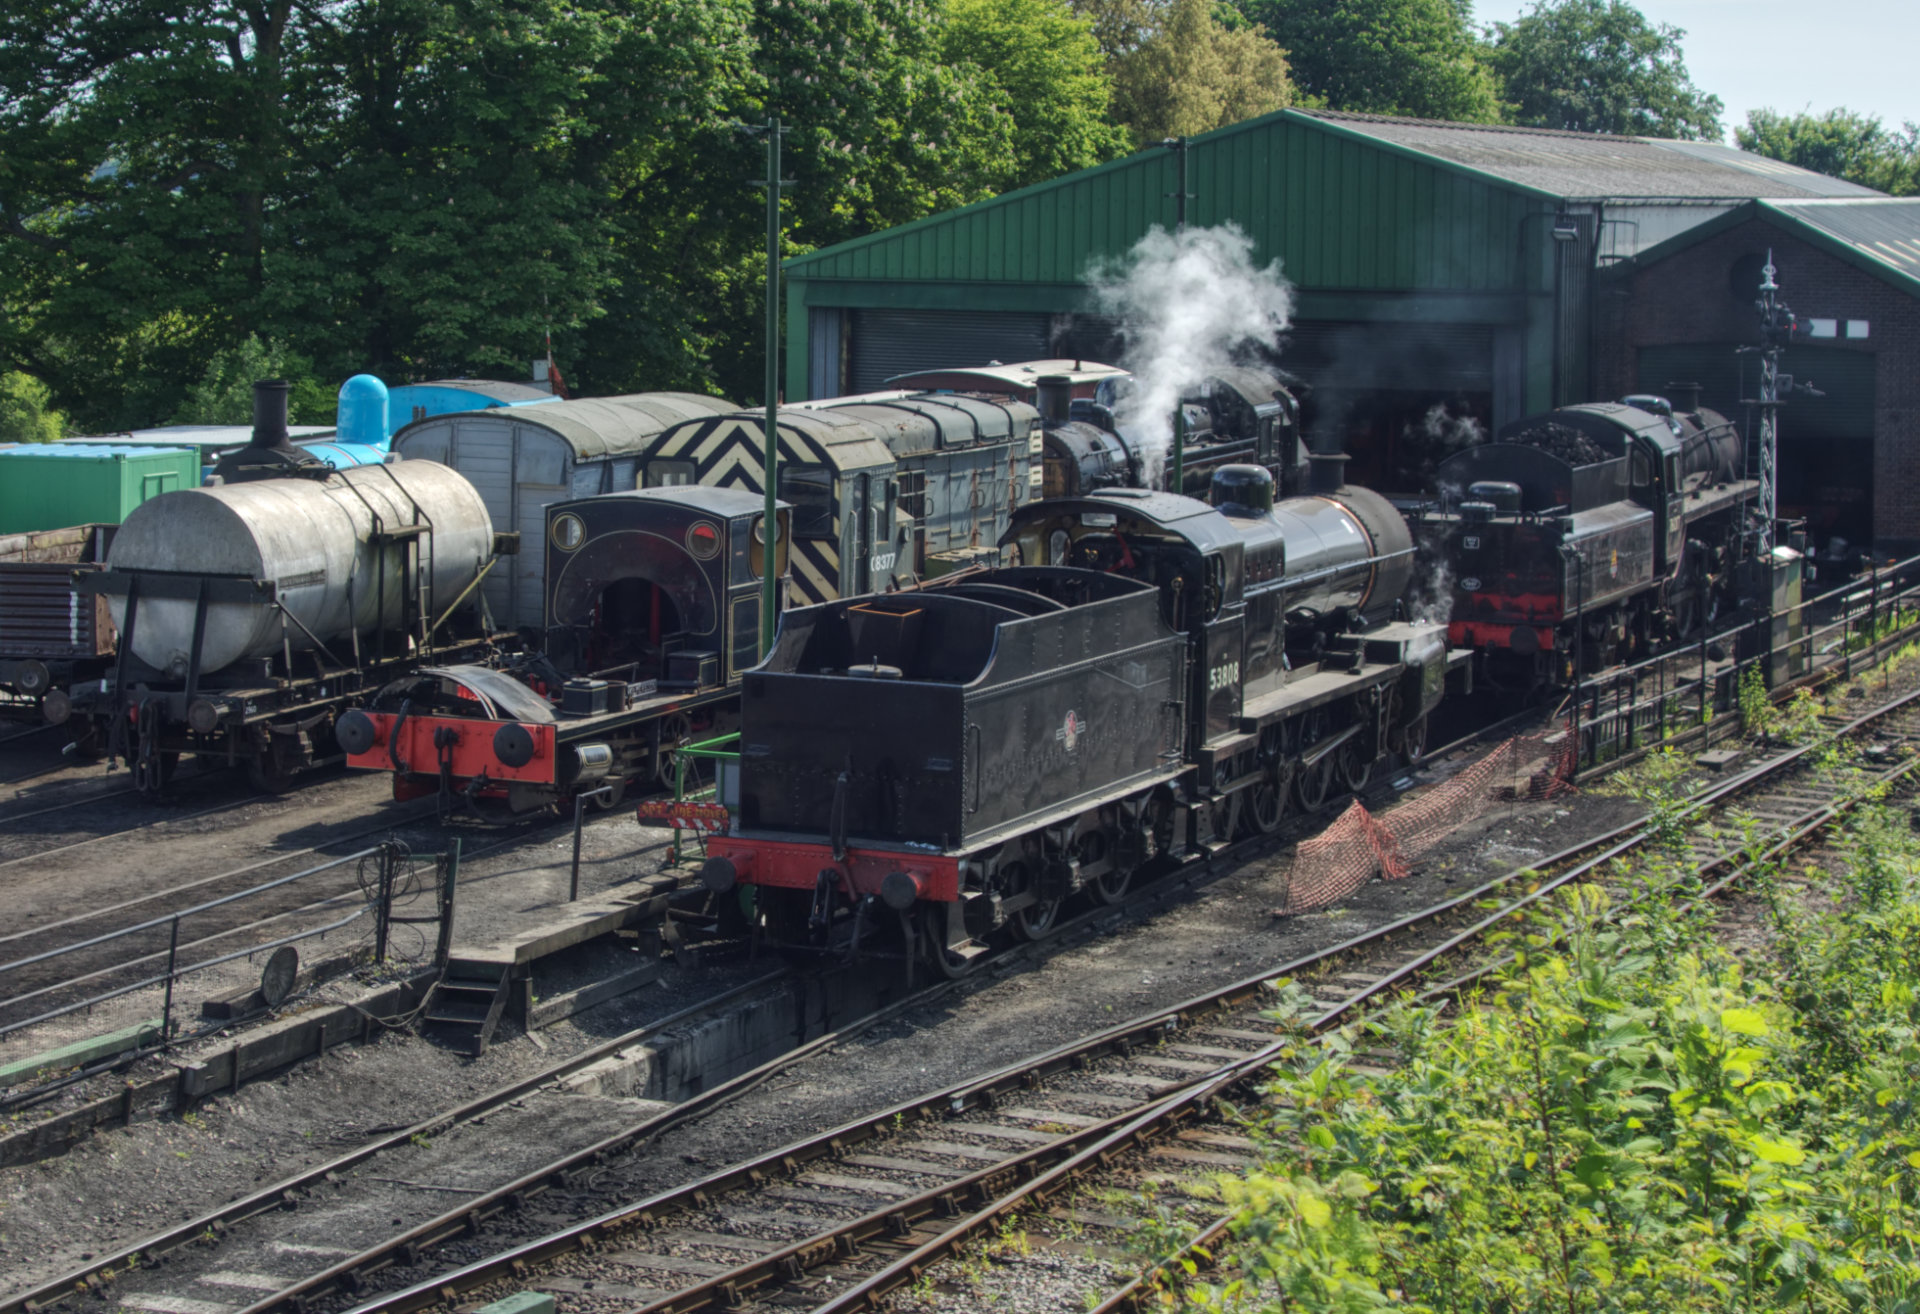 53808 on steam test at Ropley with Kilmersdon alongside